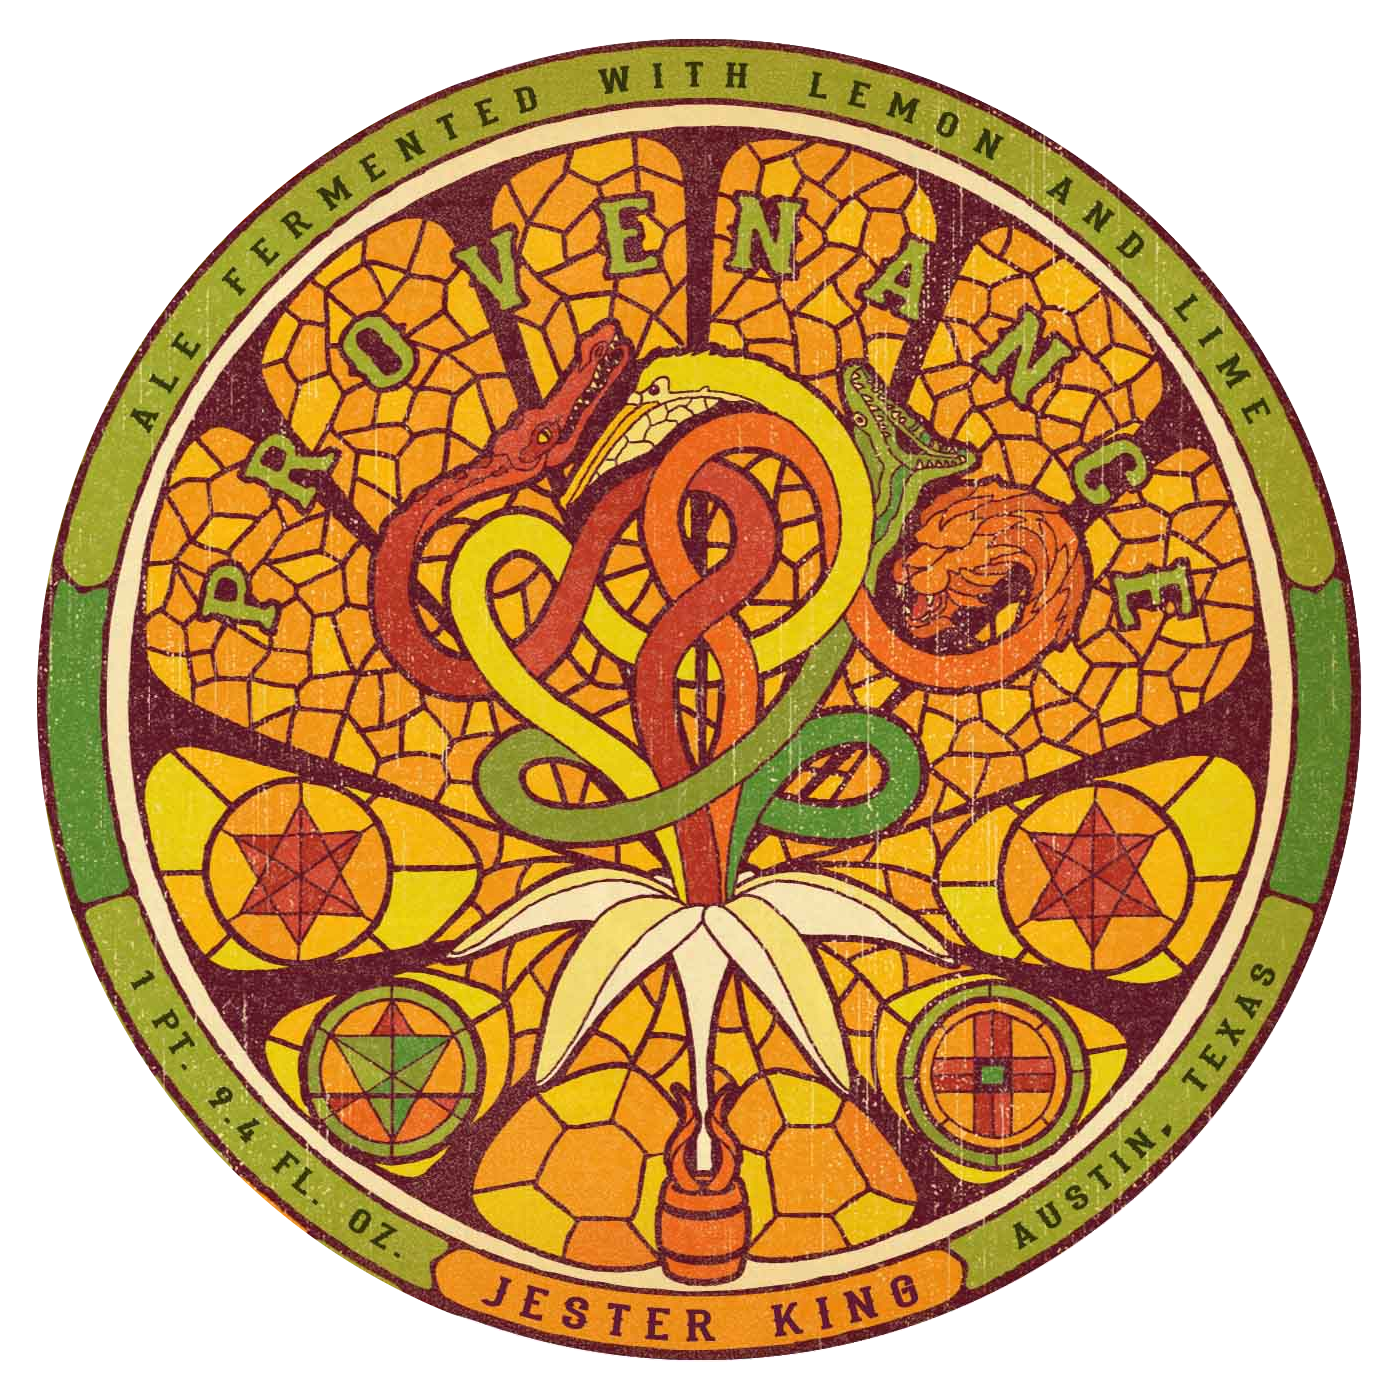 Jester King 'Provenance' Farmhouse Ale w/ Lemon & Lime 750ml